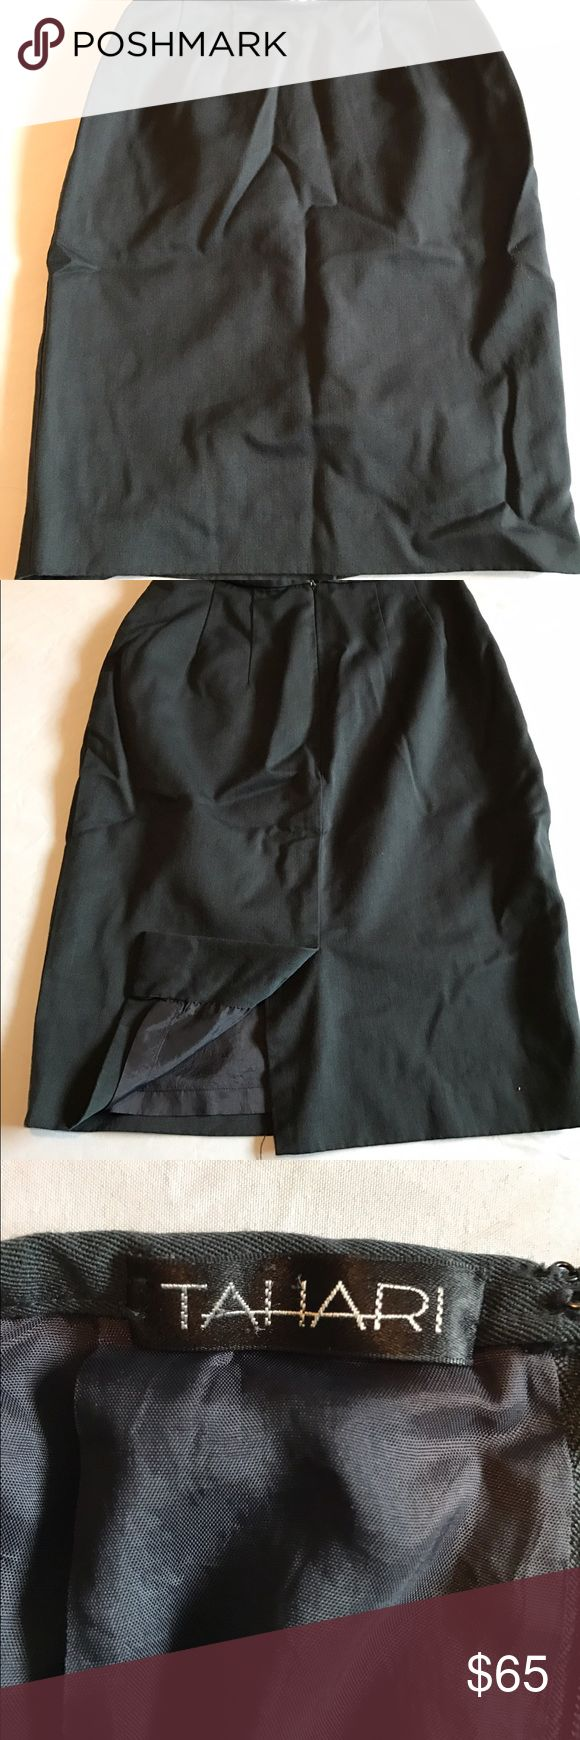 Tahari Pencil Skirt Beautiful navy blue pencil skirt with zipper in back. Fully lined with a small slit. Good condition Tahari Skirts Pencil